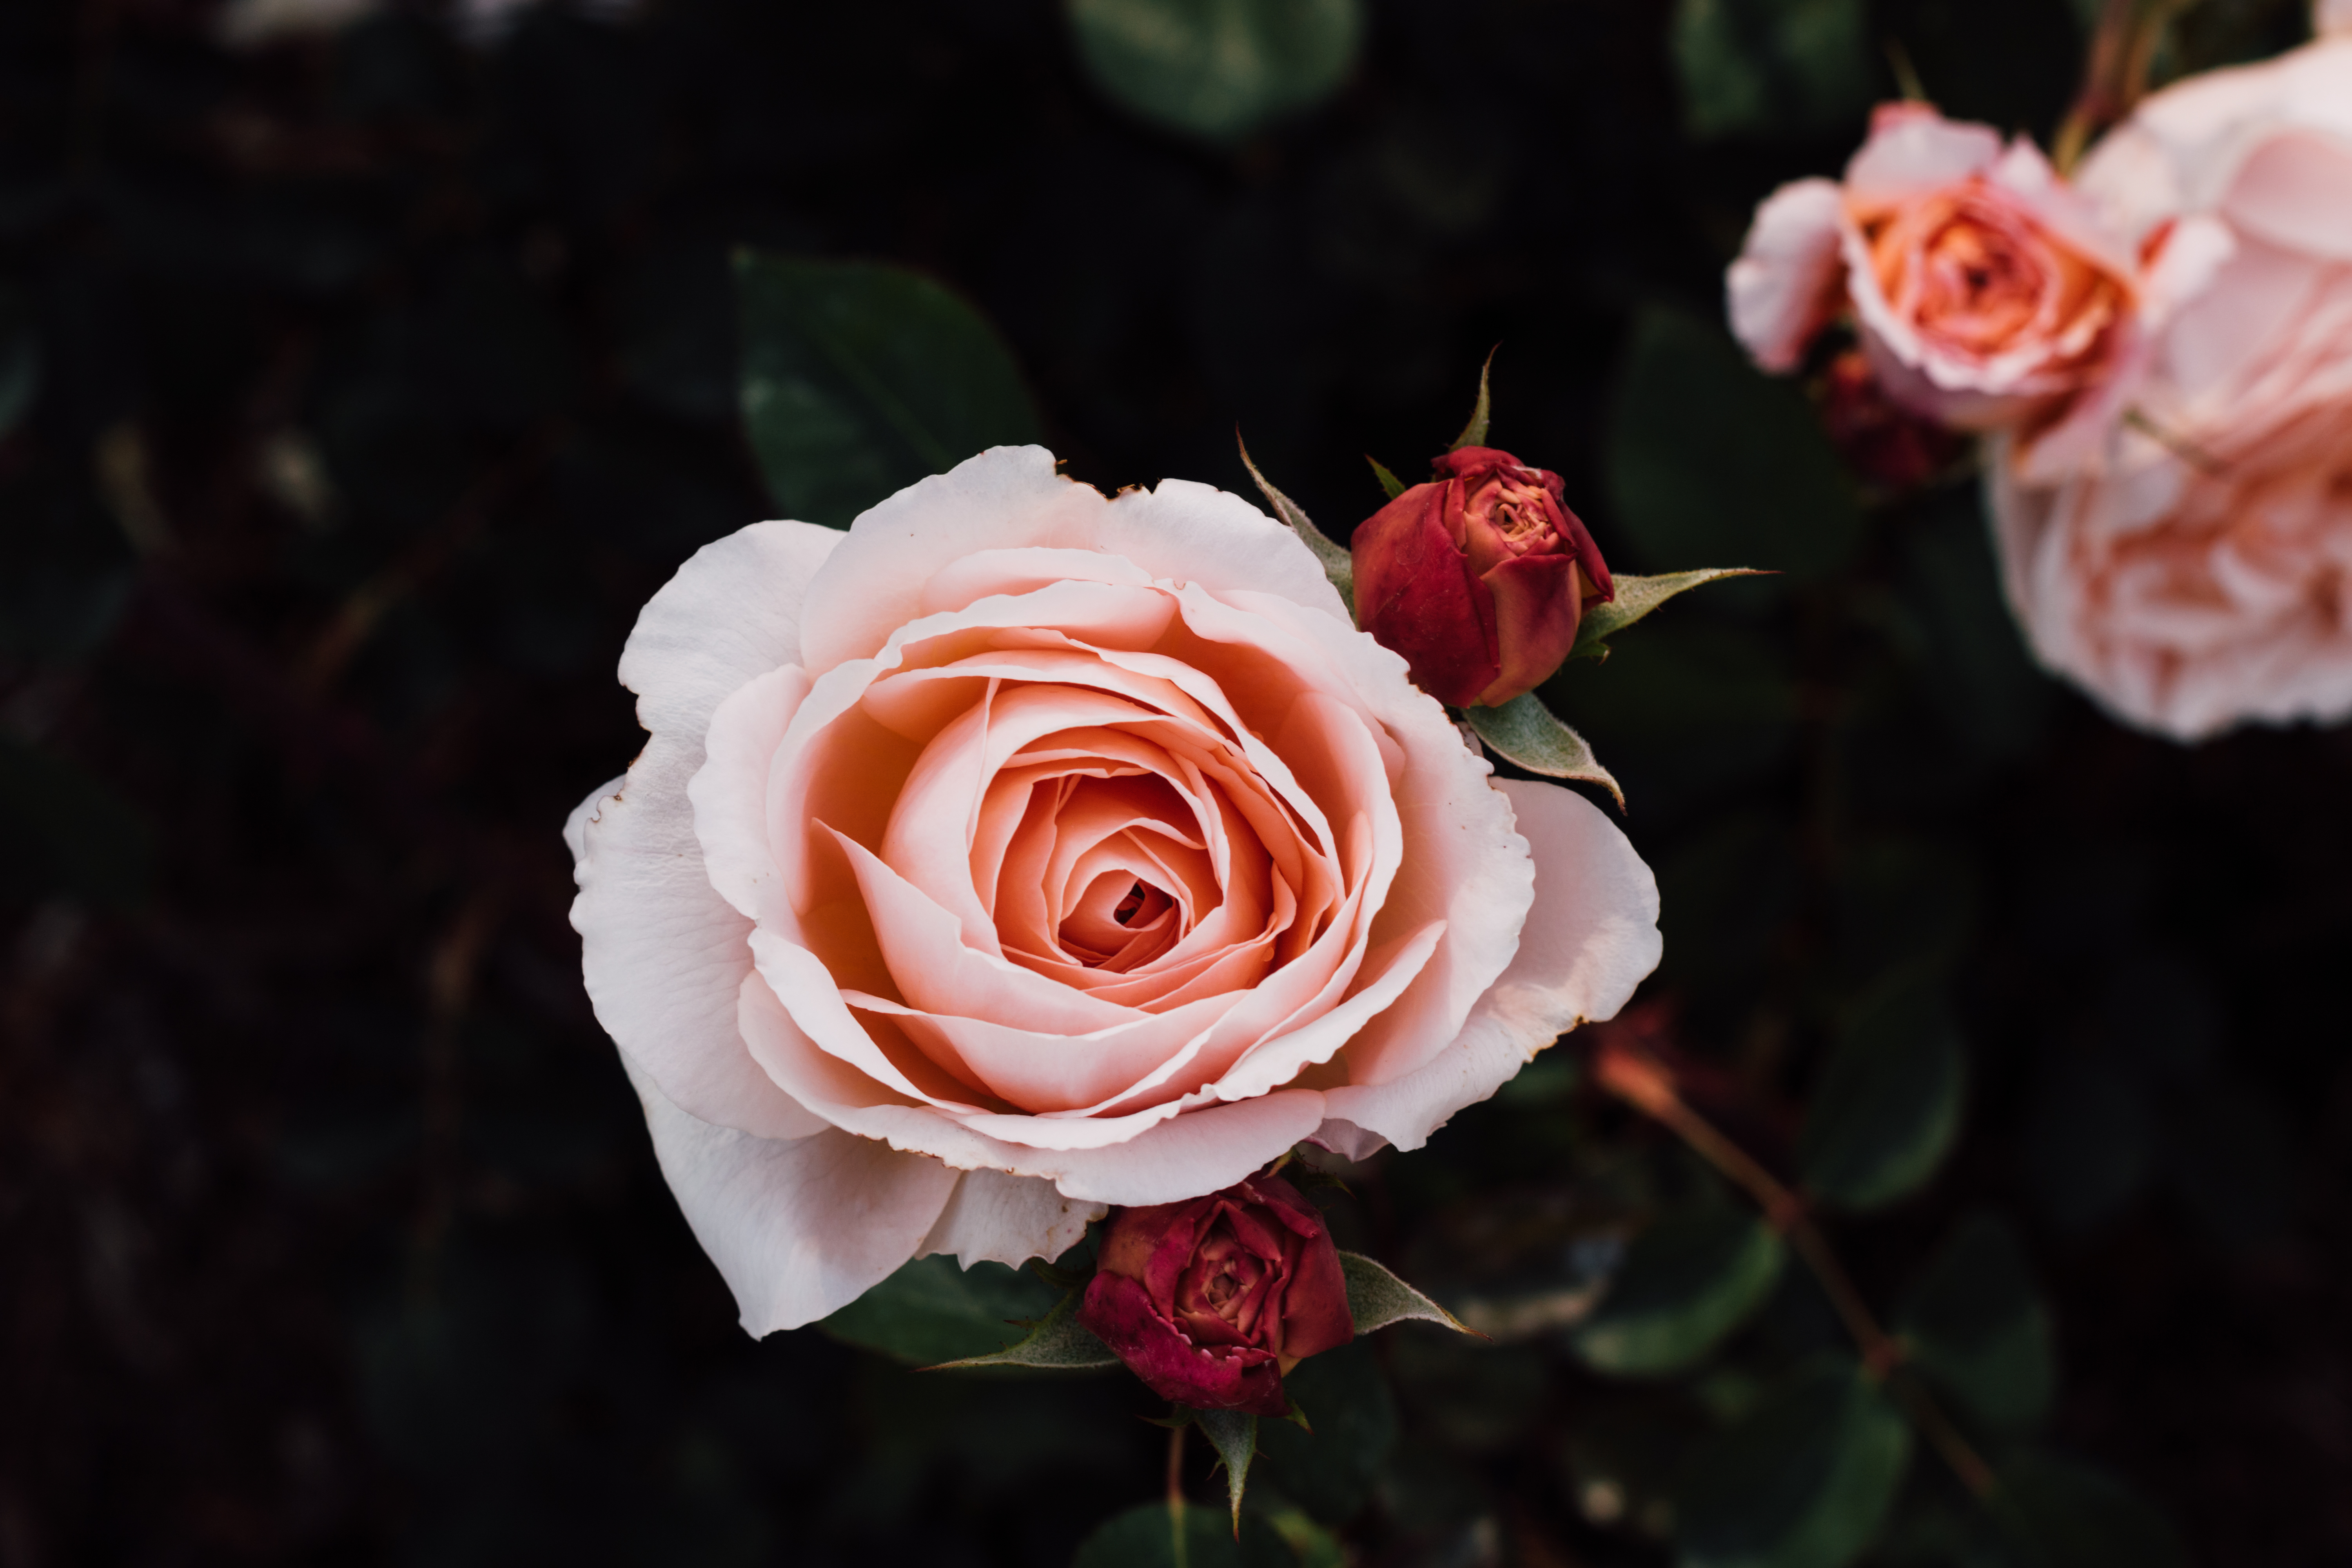 roses_buds_petals_flowers_114879_6000x4000